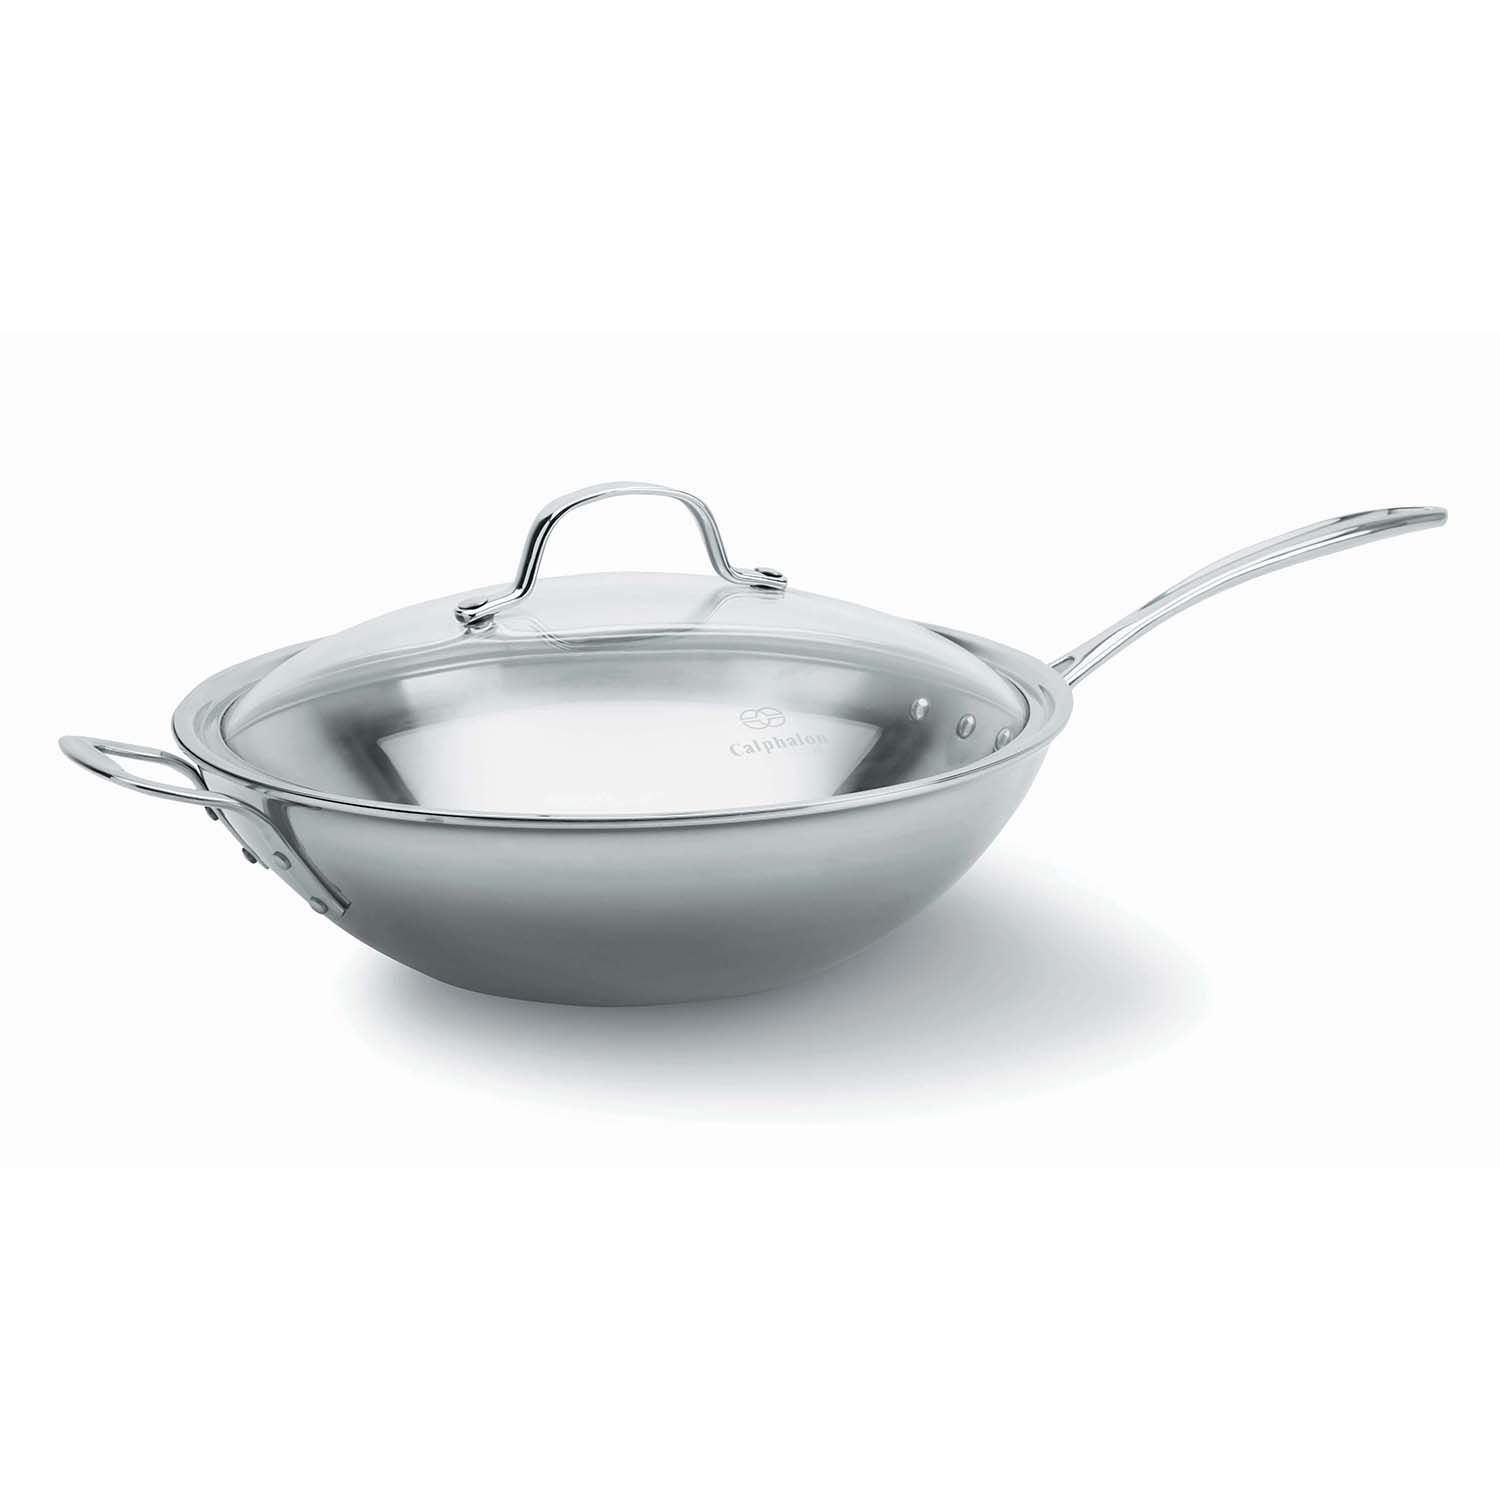 calphalon triply stainless steel 12in covered wok